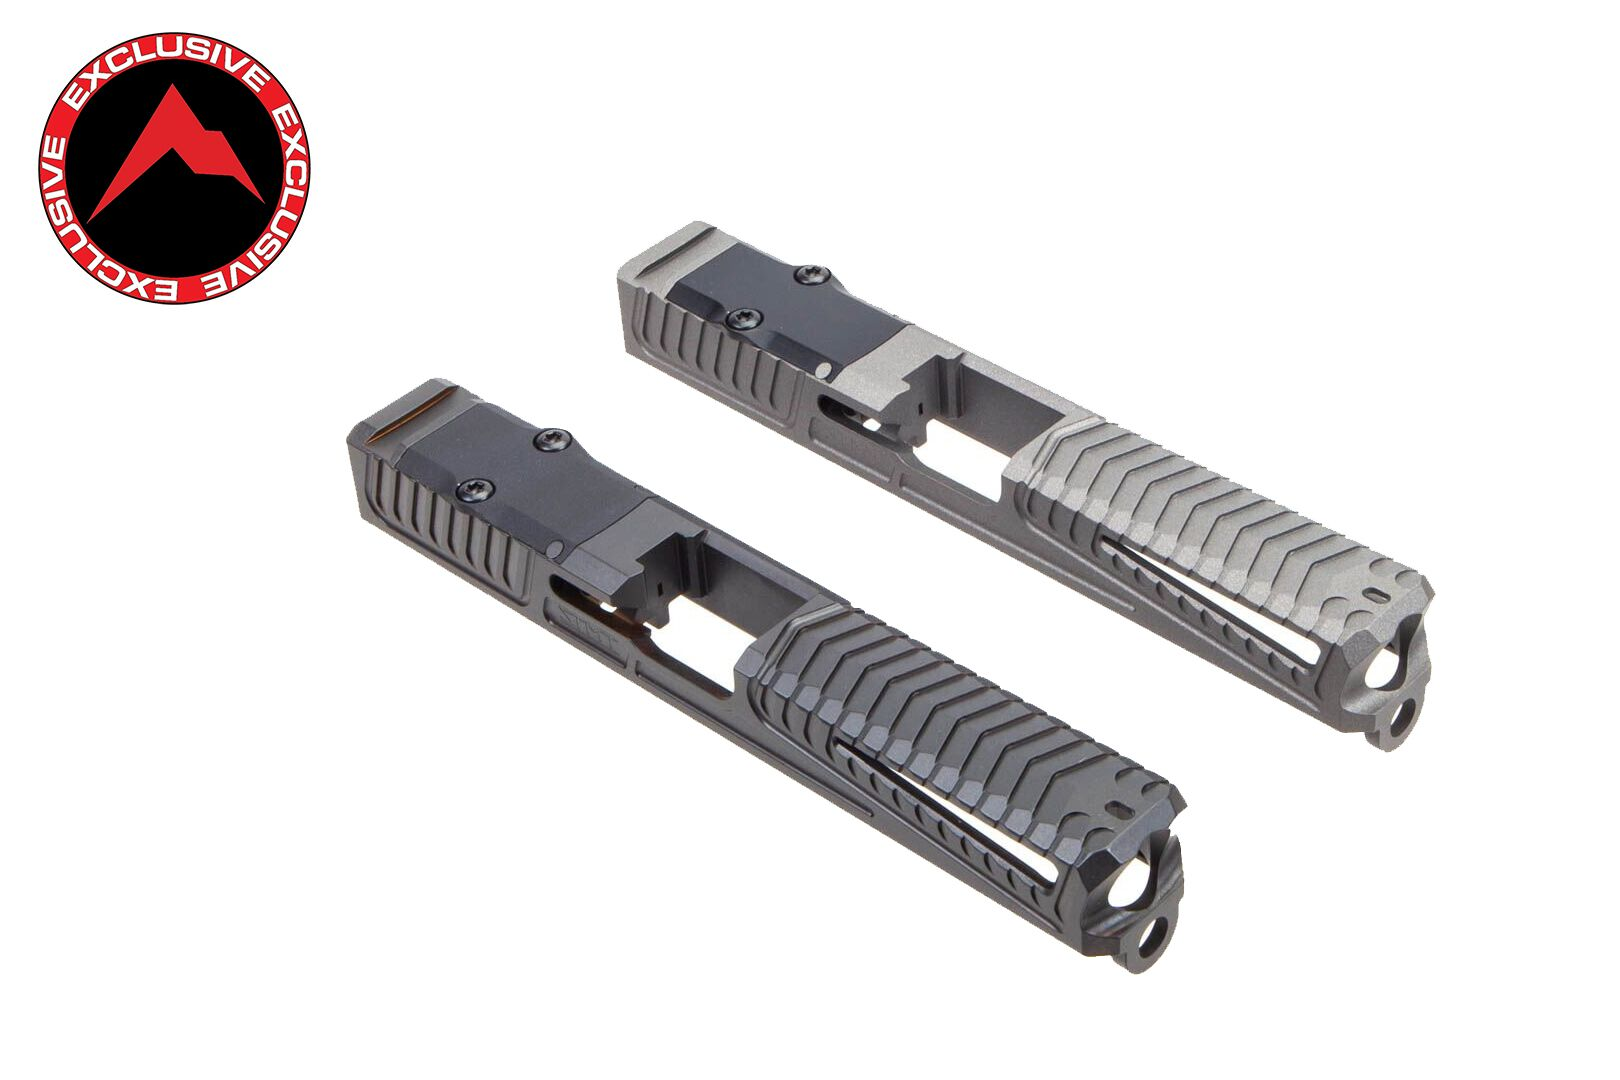 Statement Defense Glock 17 Gen 3 SW Overbite Stripped Slide - Trijicon RMR Cut (Rainier Arms Exclusive)